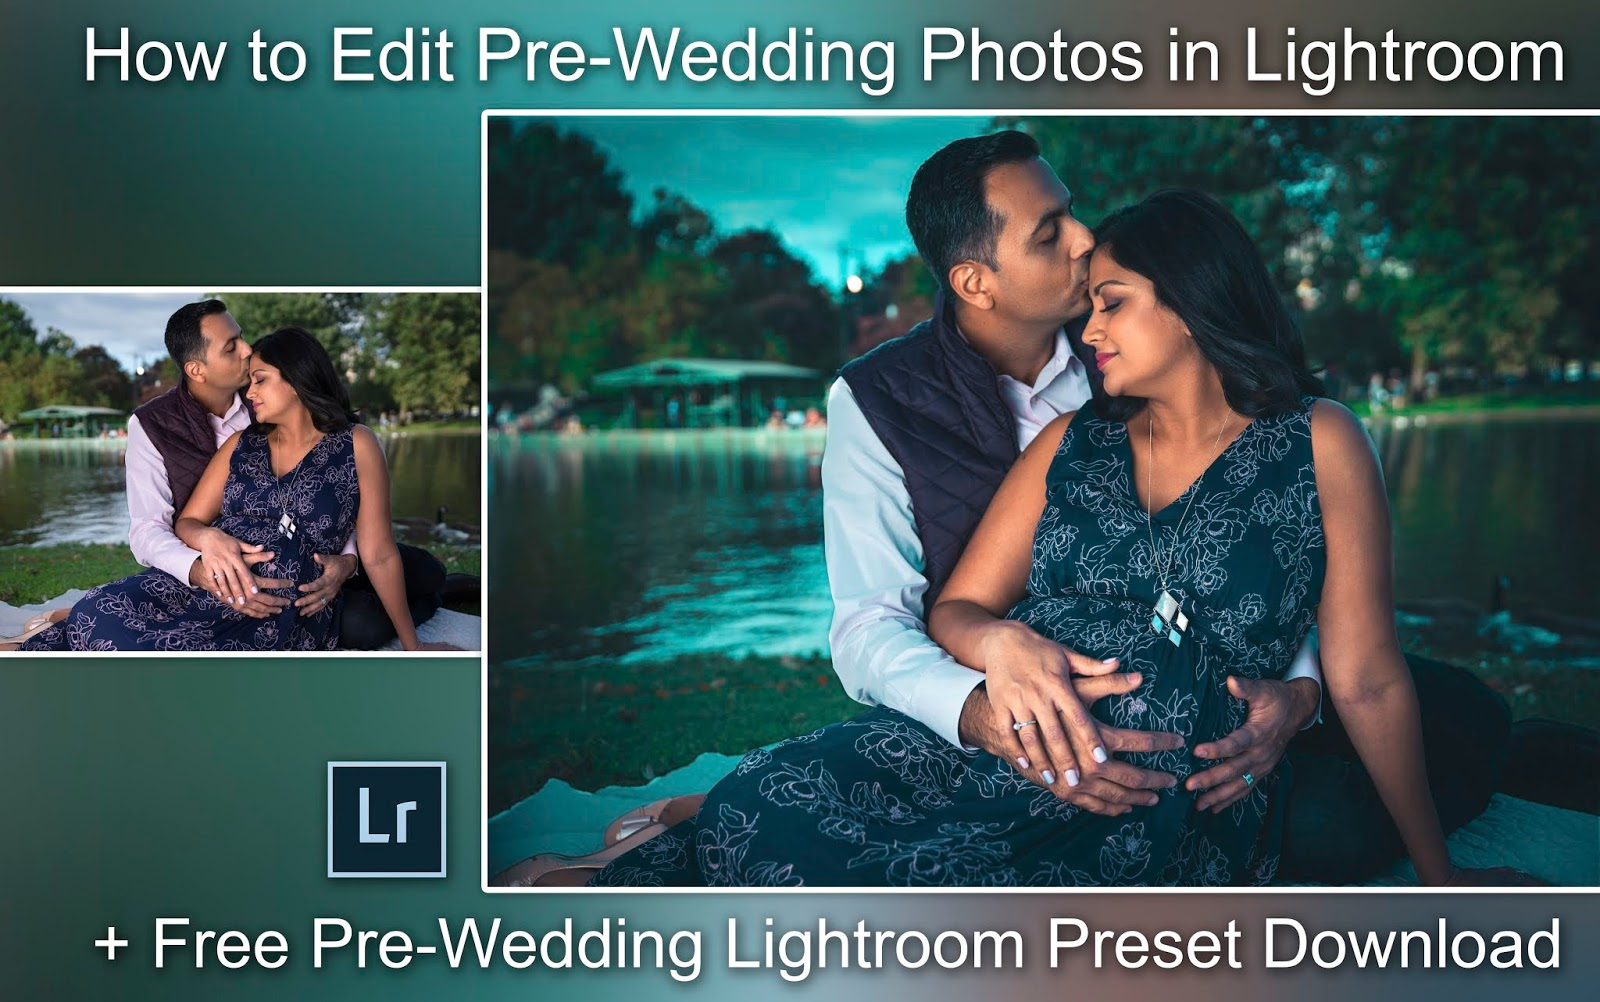 Free Preset + How to Edit Pre-Wedding Photos in Lightroom | How to Edit Couple Photos in Lightroom